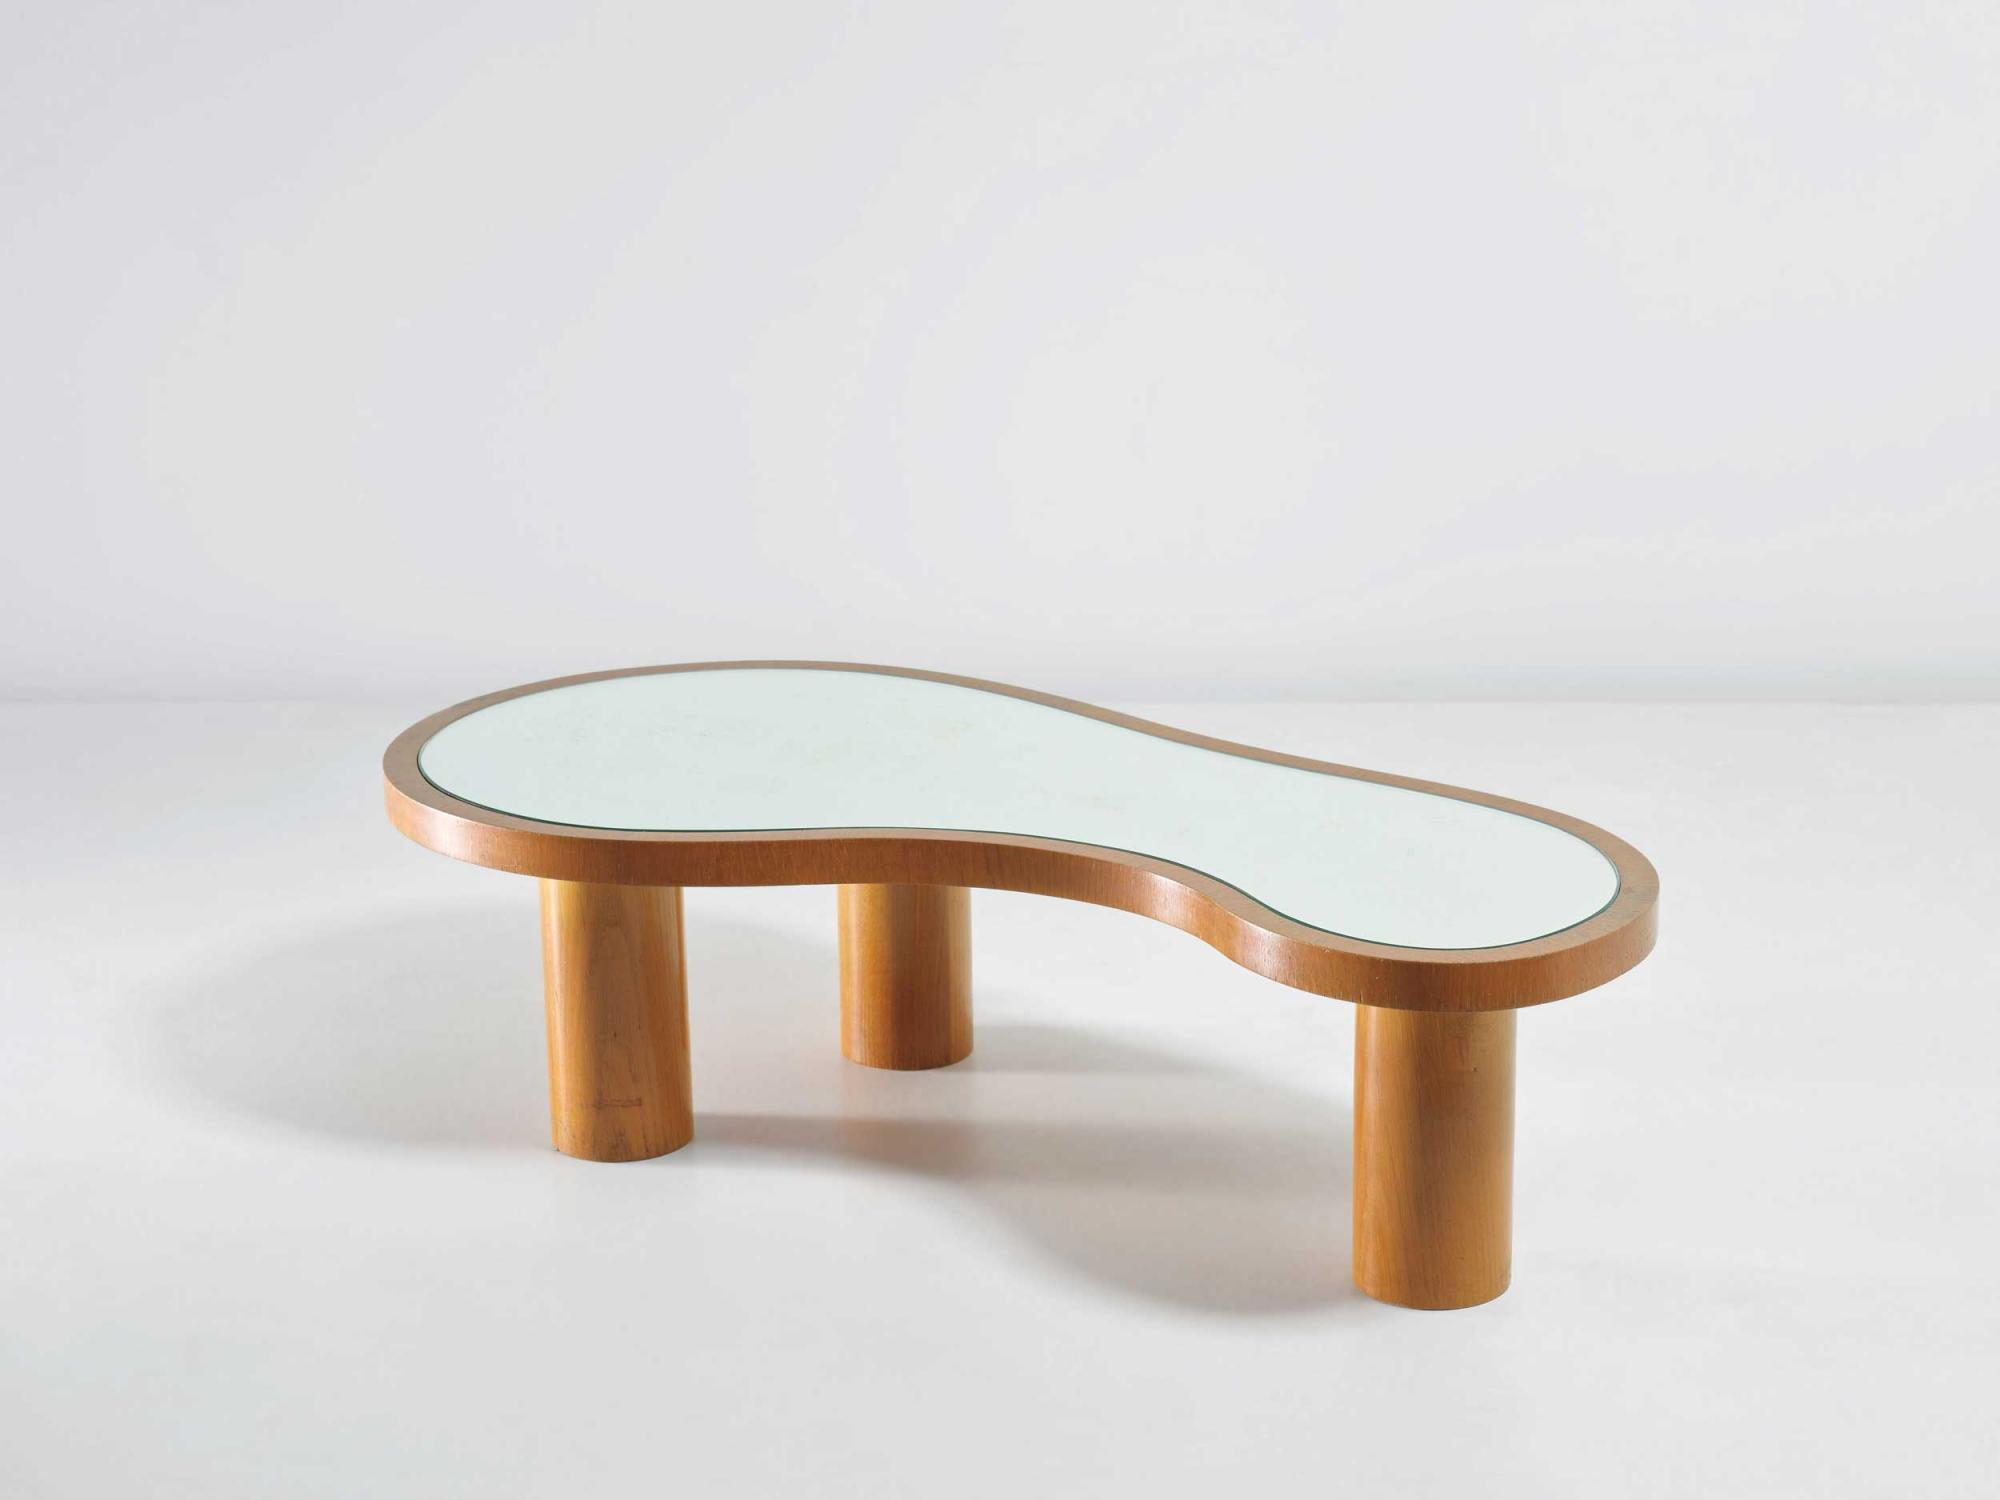 JEAN-ROYERE,-Flaque'-coffee-table_01_Image-Courtesy-of-Phillips.jpg